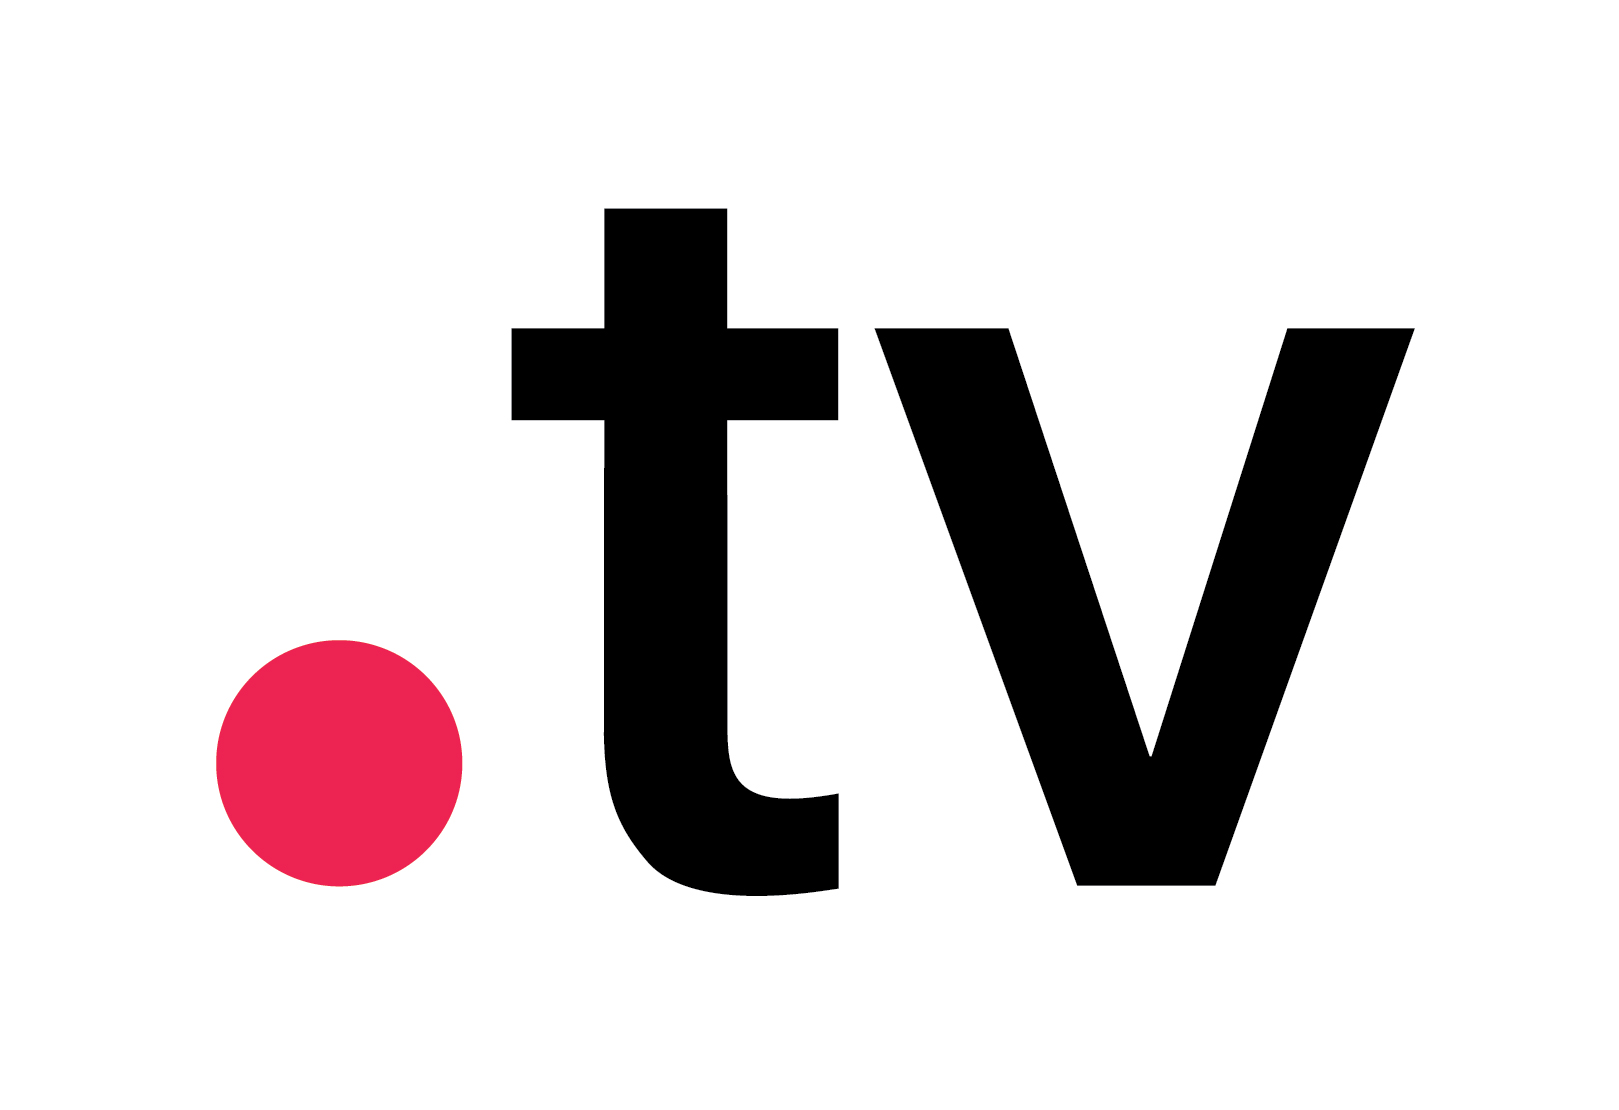 tv Domain Registration - .tv Domains - Register Domain Name .tv: sibername.com/canadiandomainregistration/domains/tv-domain-names.php